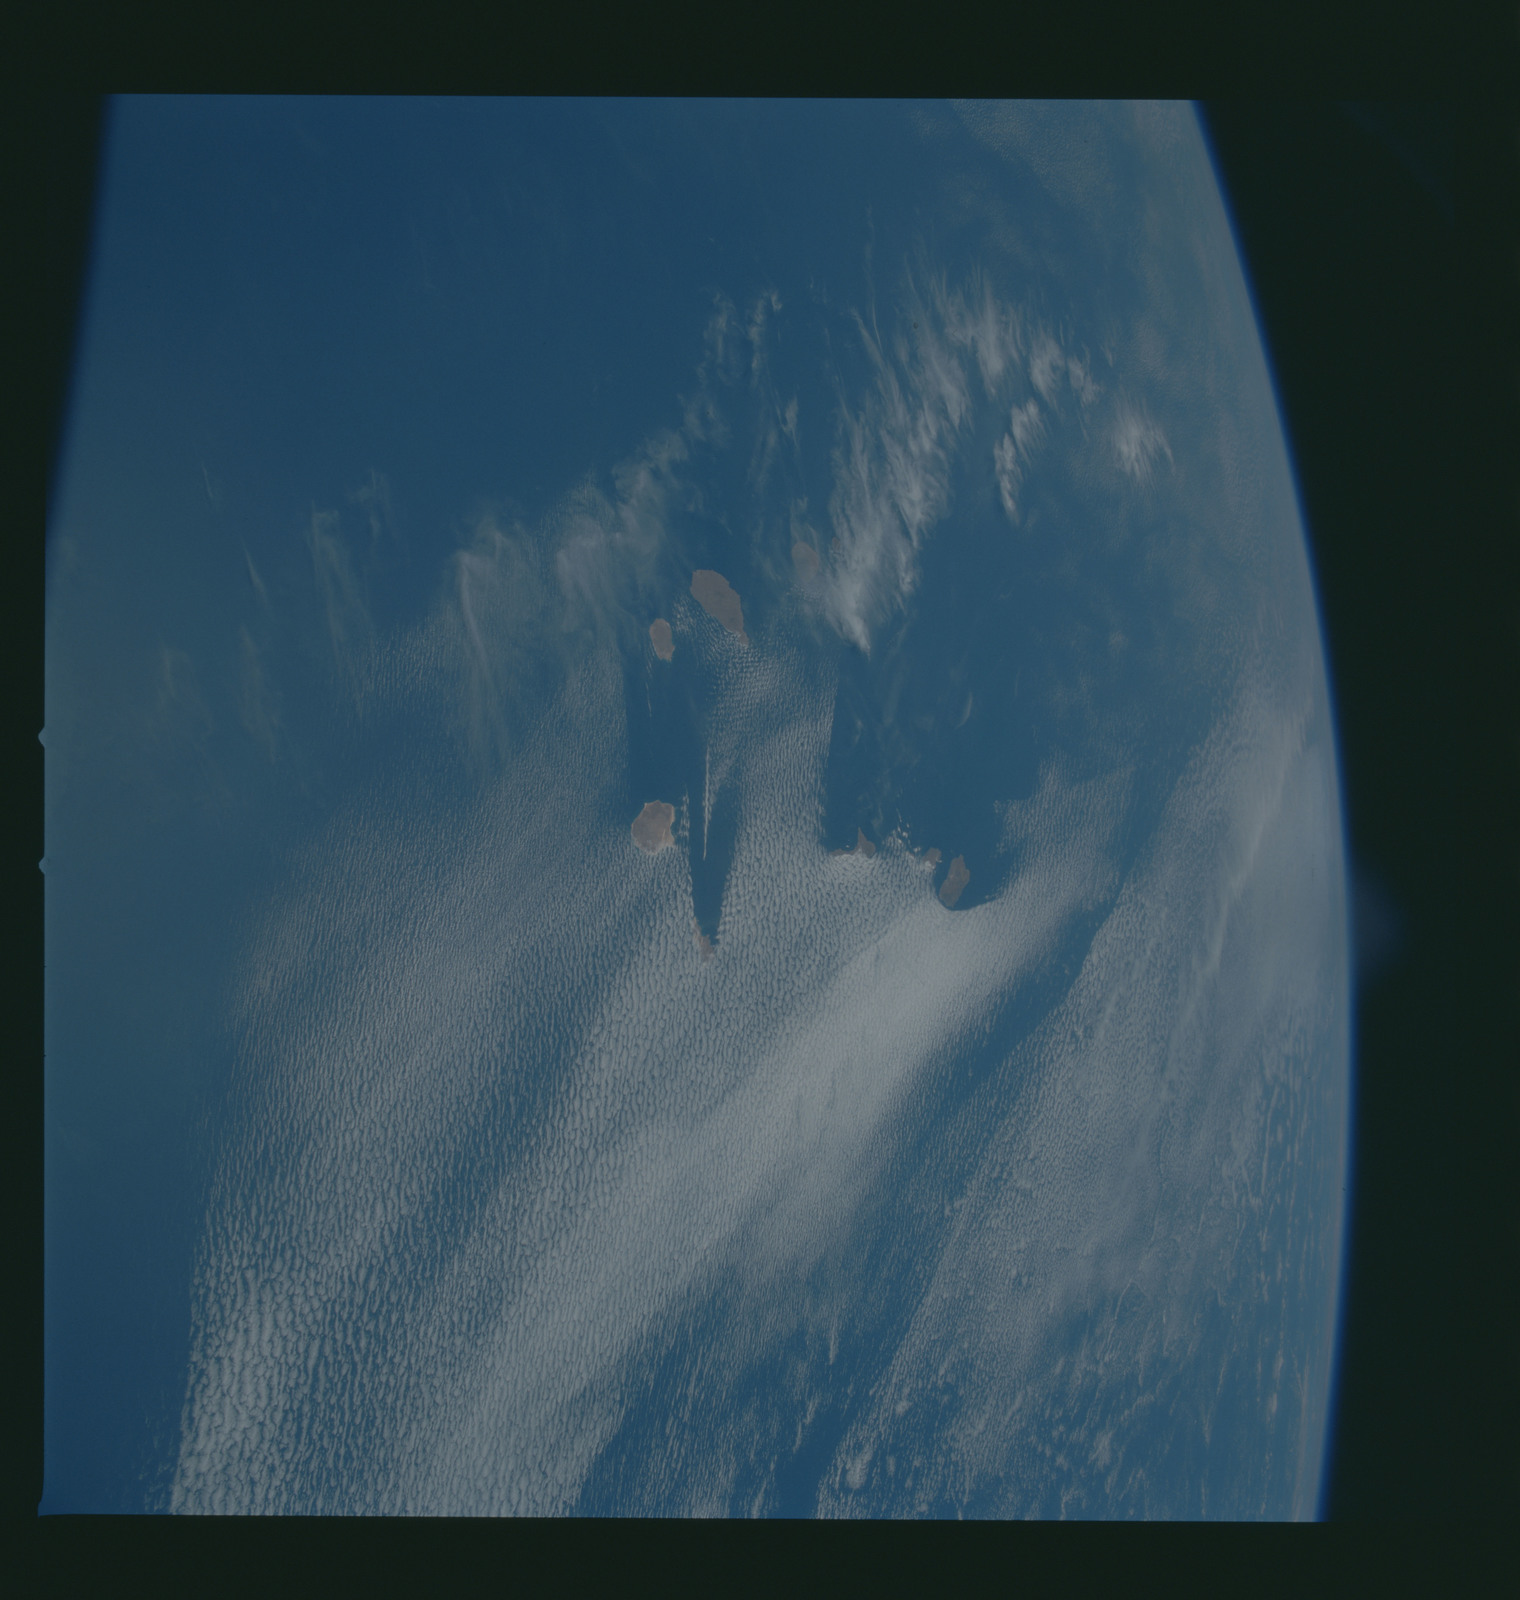 S37-96-040 - STS-037 - Earth observations taken from OV-104 during STS-37 mission